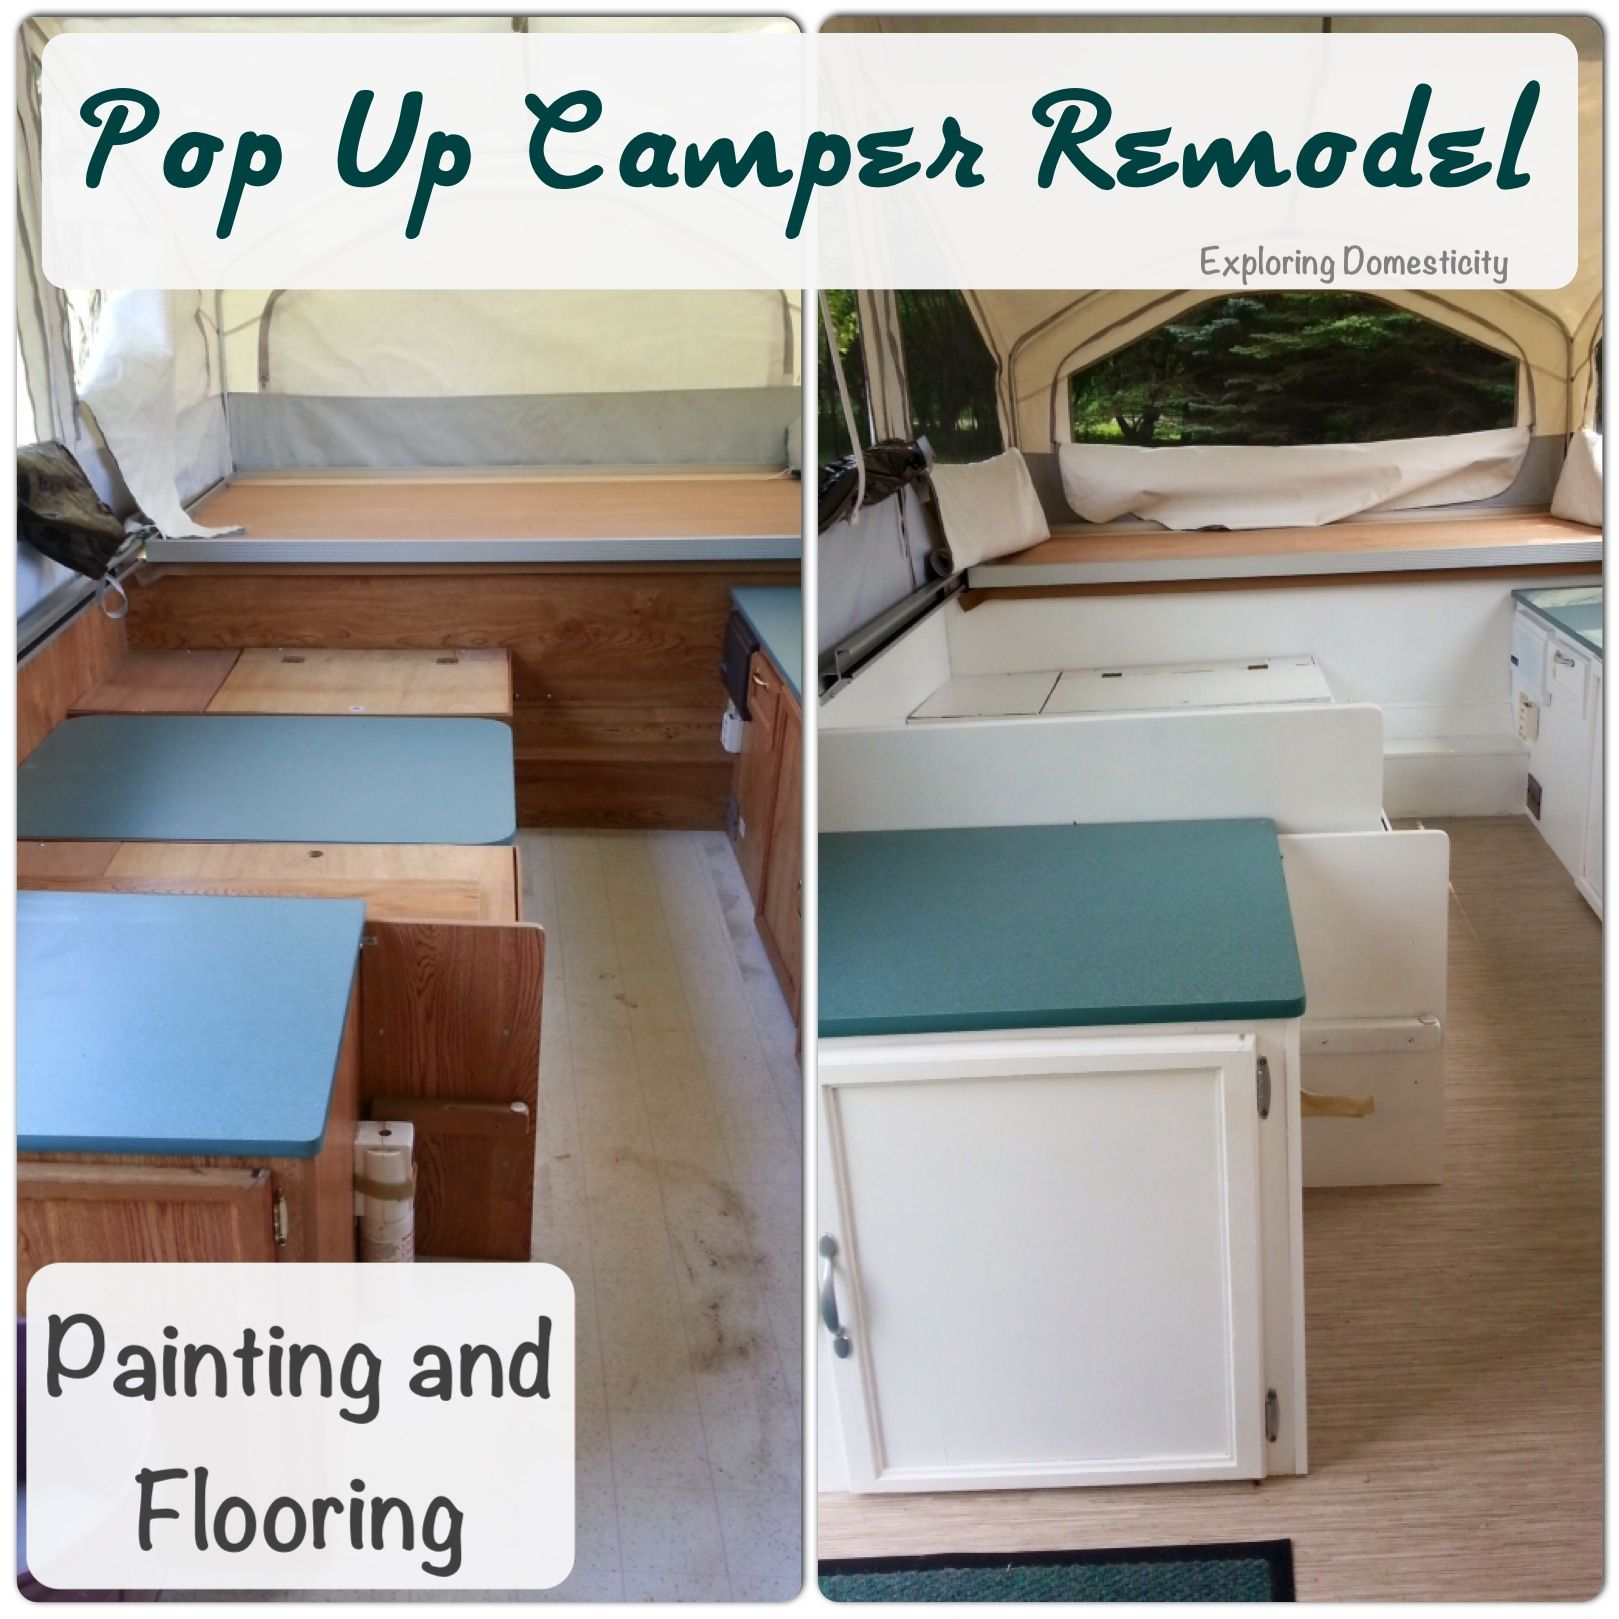 Pop Up Camper Remodel Painting And Flooring Remodeled Campers Camper Makeover Popup Camper